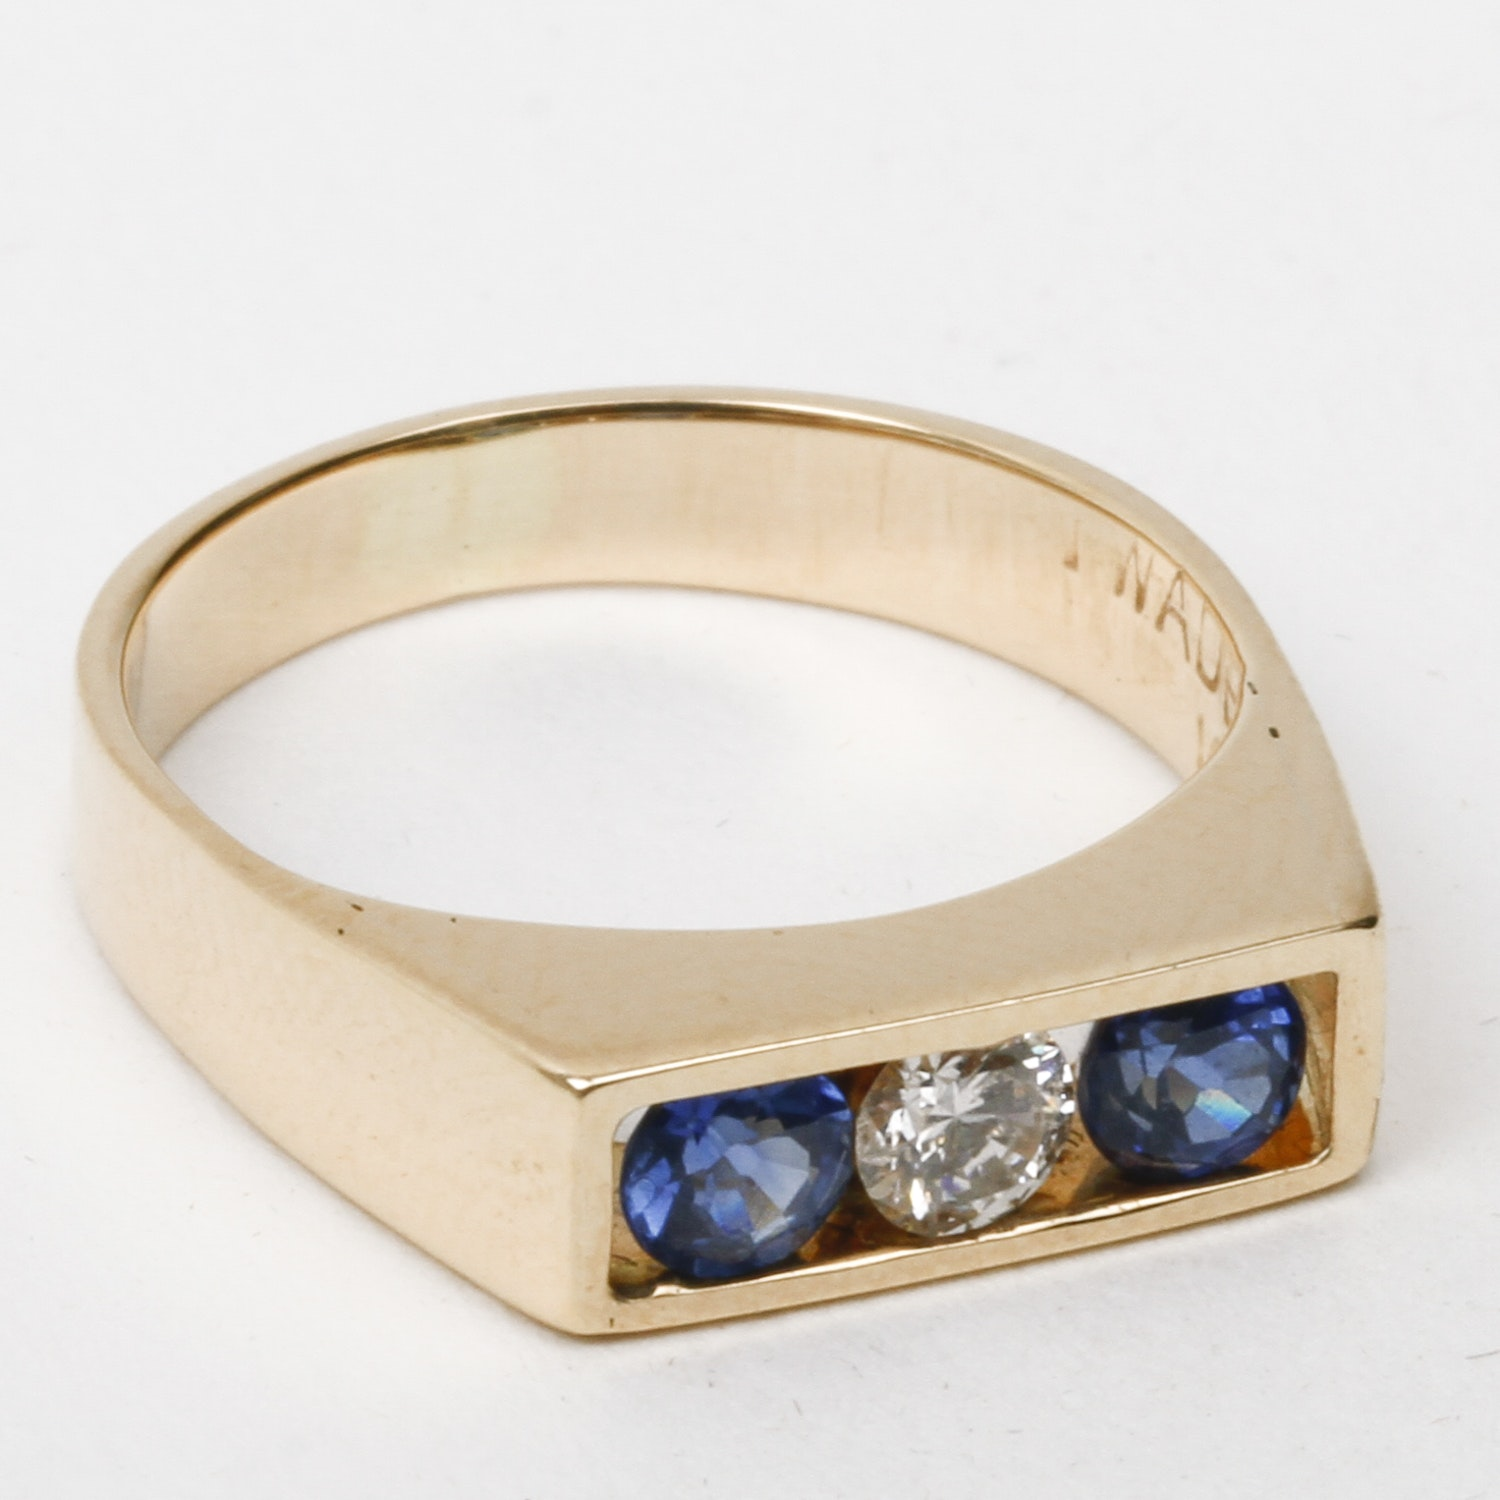 Wade 14K Yellow Gold, Diamond, and Sapphire Flat Top Pinky Ring